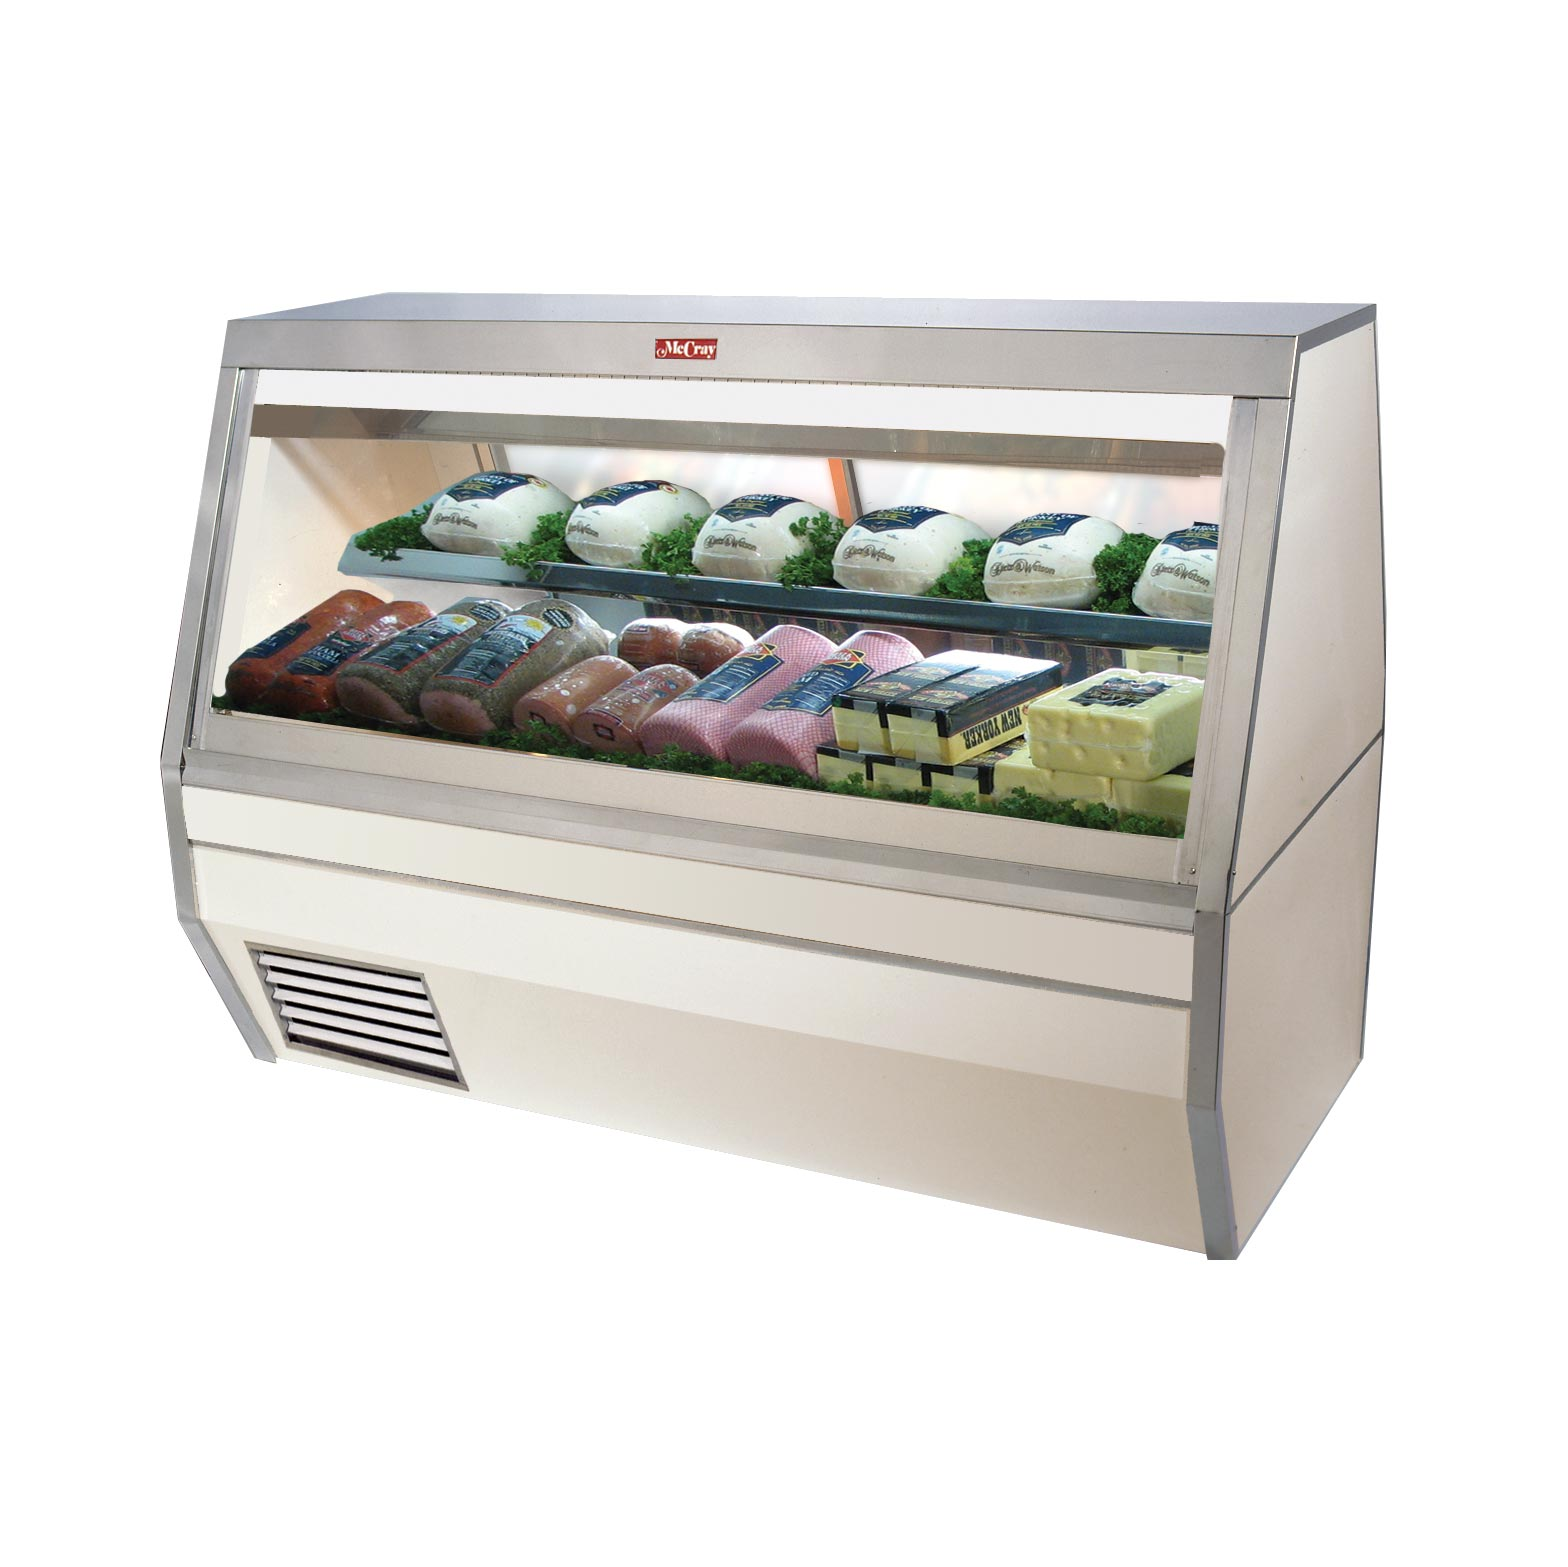 Howard-McCray SC-CDS35-6-LED display case, refrigerated deli